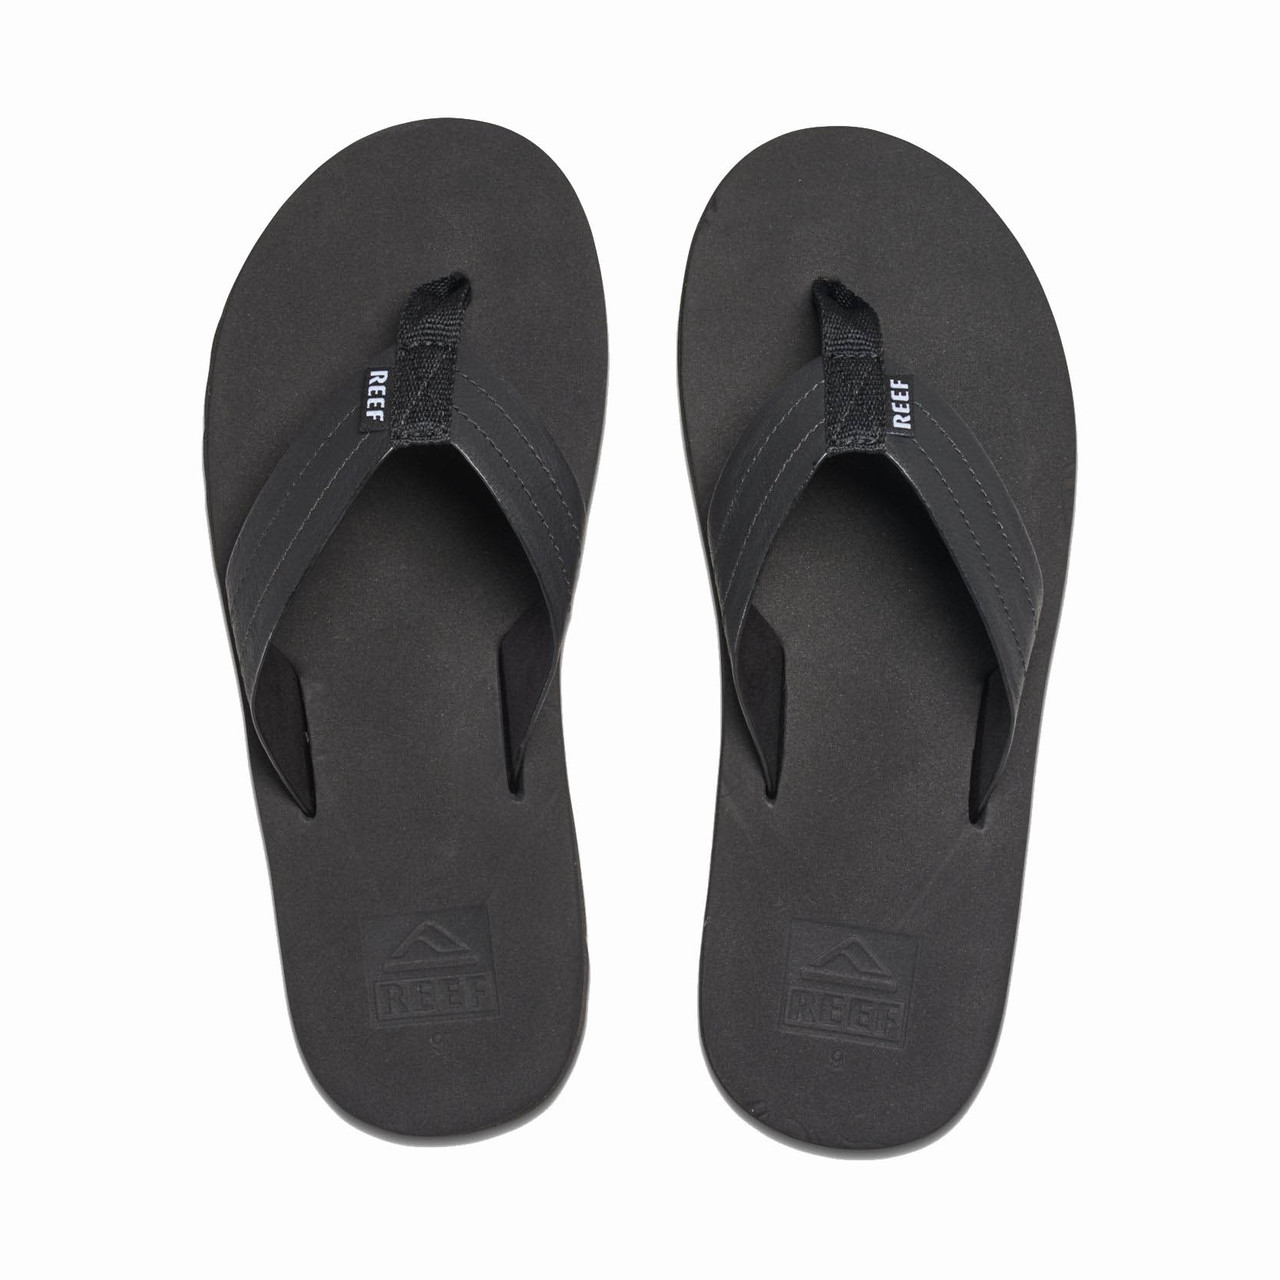 d008404b8e83 Reef Flip Flop - Reef Voyage - Black - Surf and Dirt